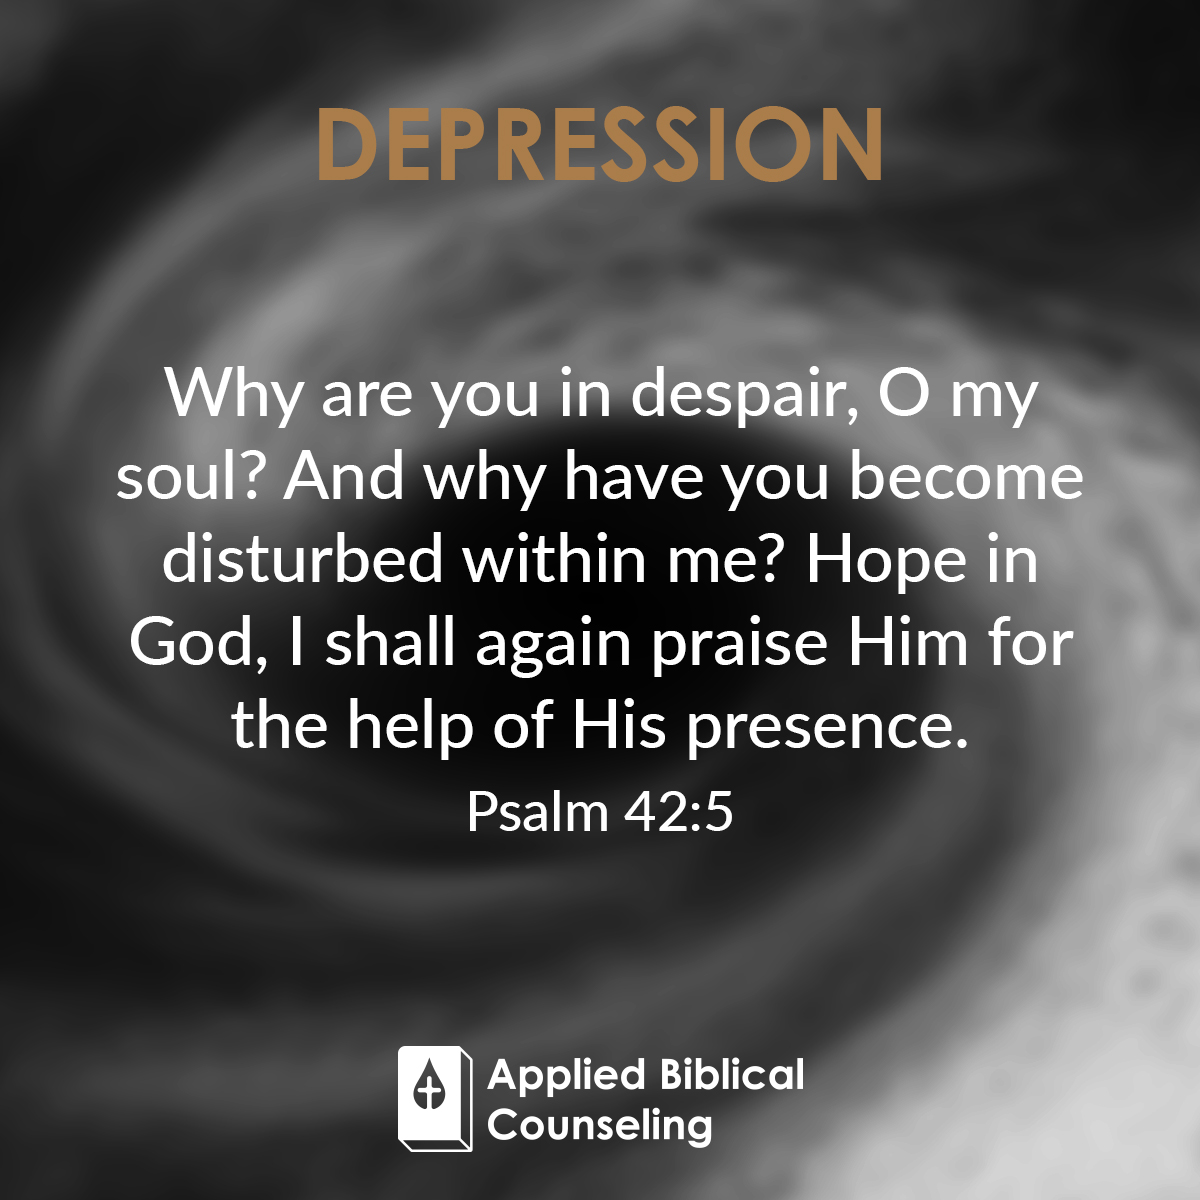 Applied Biblical Counseling Facebook w27 Depression 1